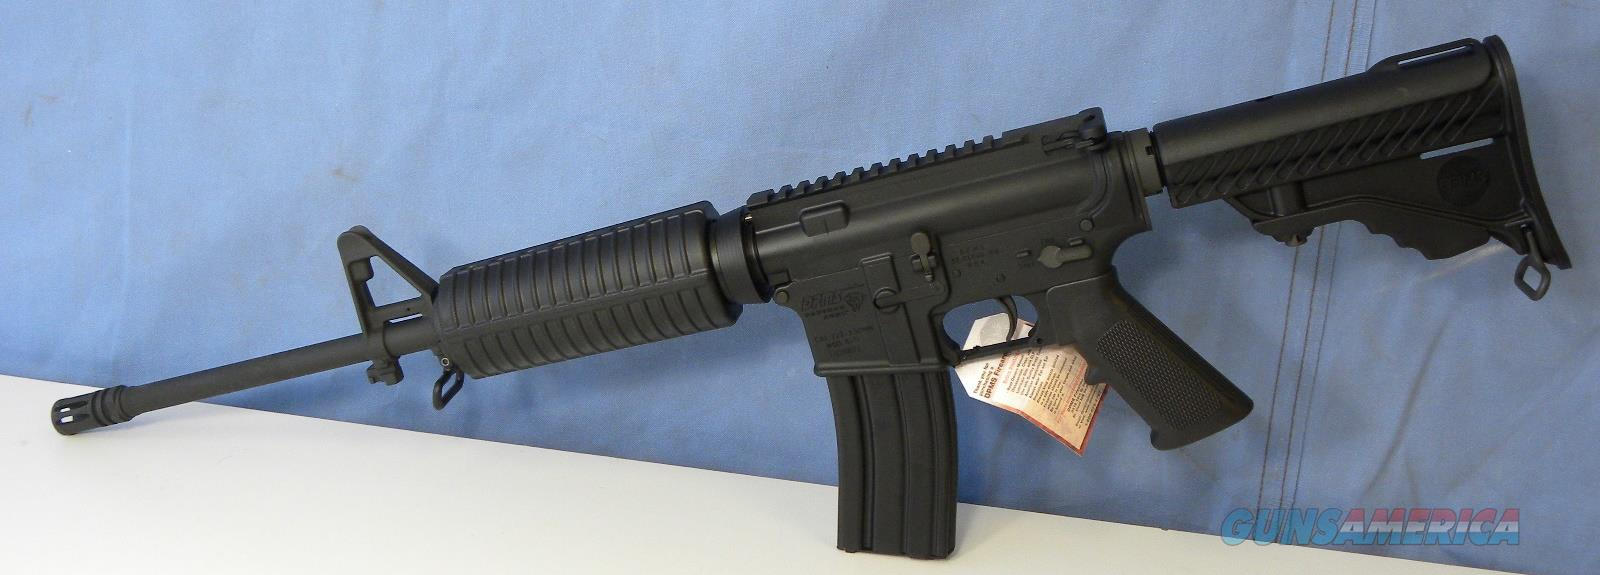 DPMS A3 Lite 16   Guns > Rifles > DPMS - Panther Arms > Complete Rifle